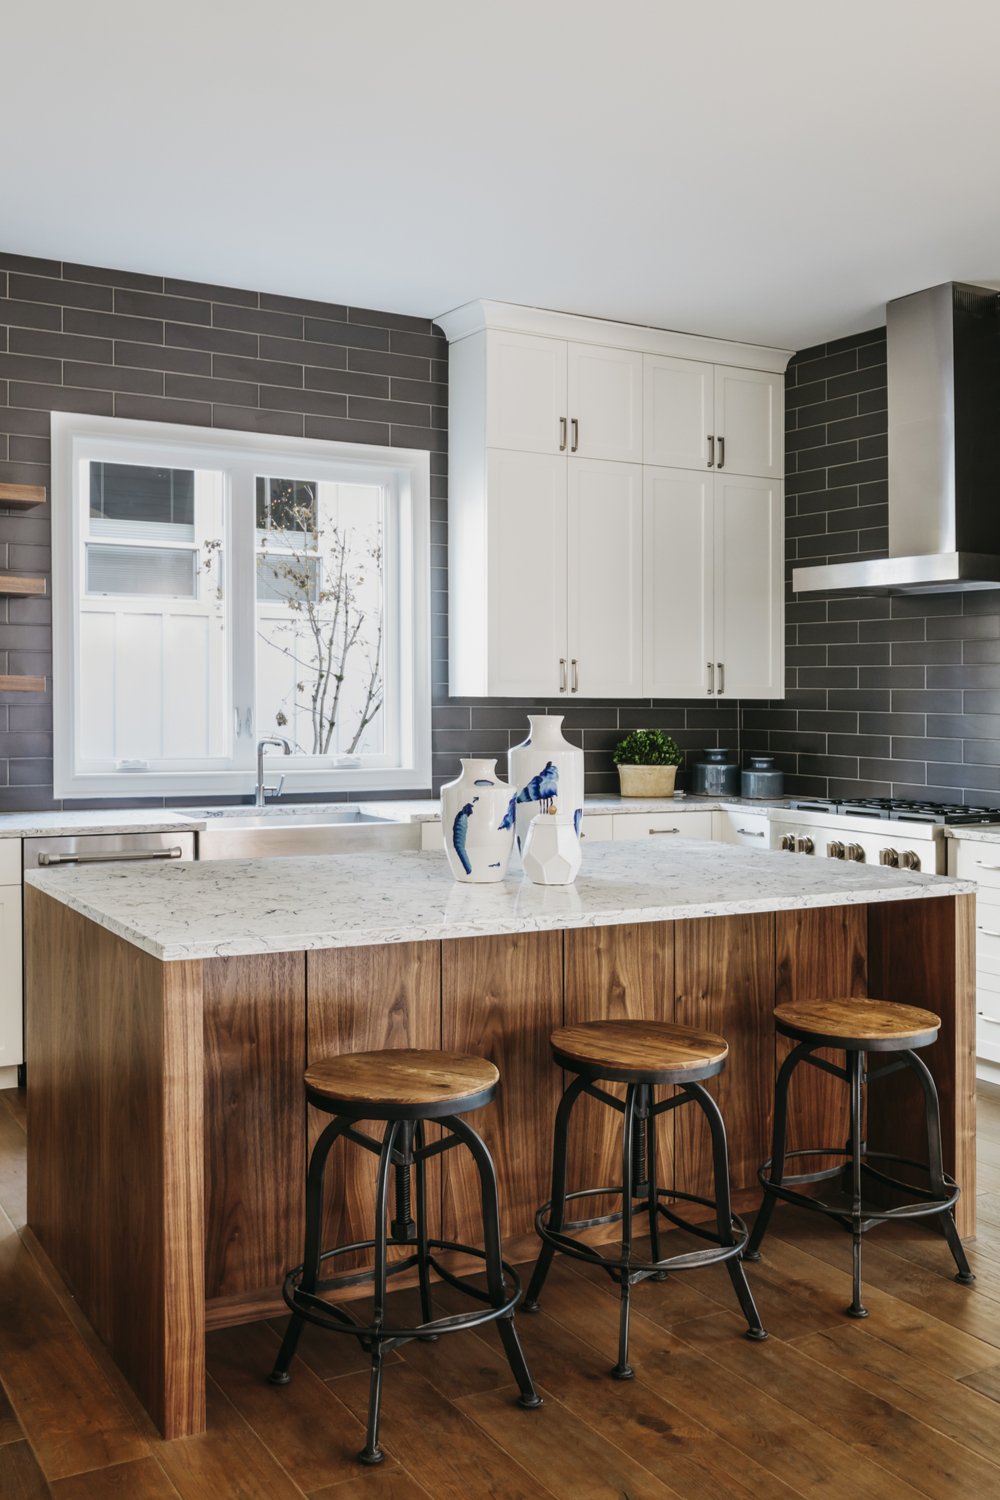 22 Small Kitchen Island Ideas For Saving Space